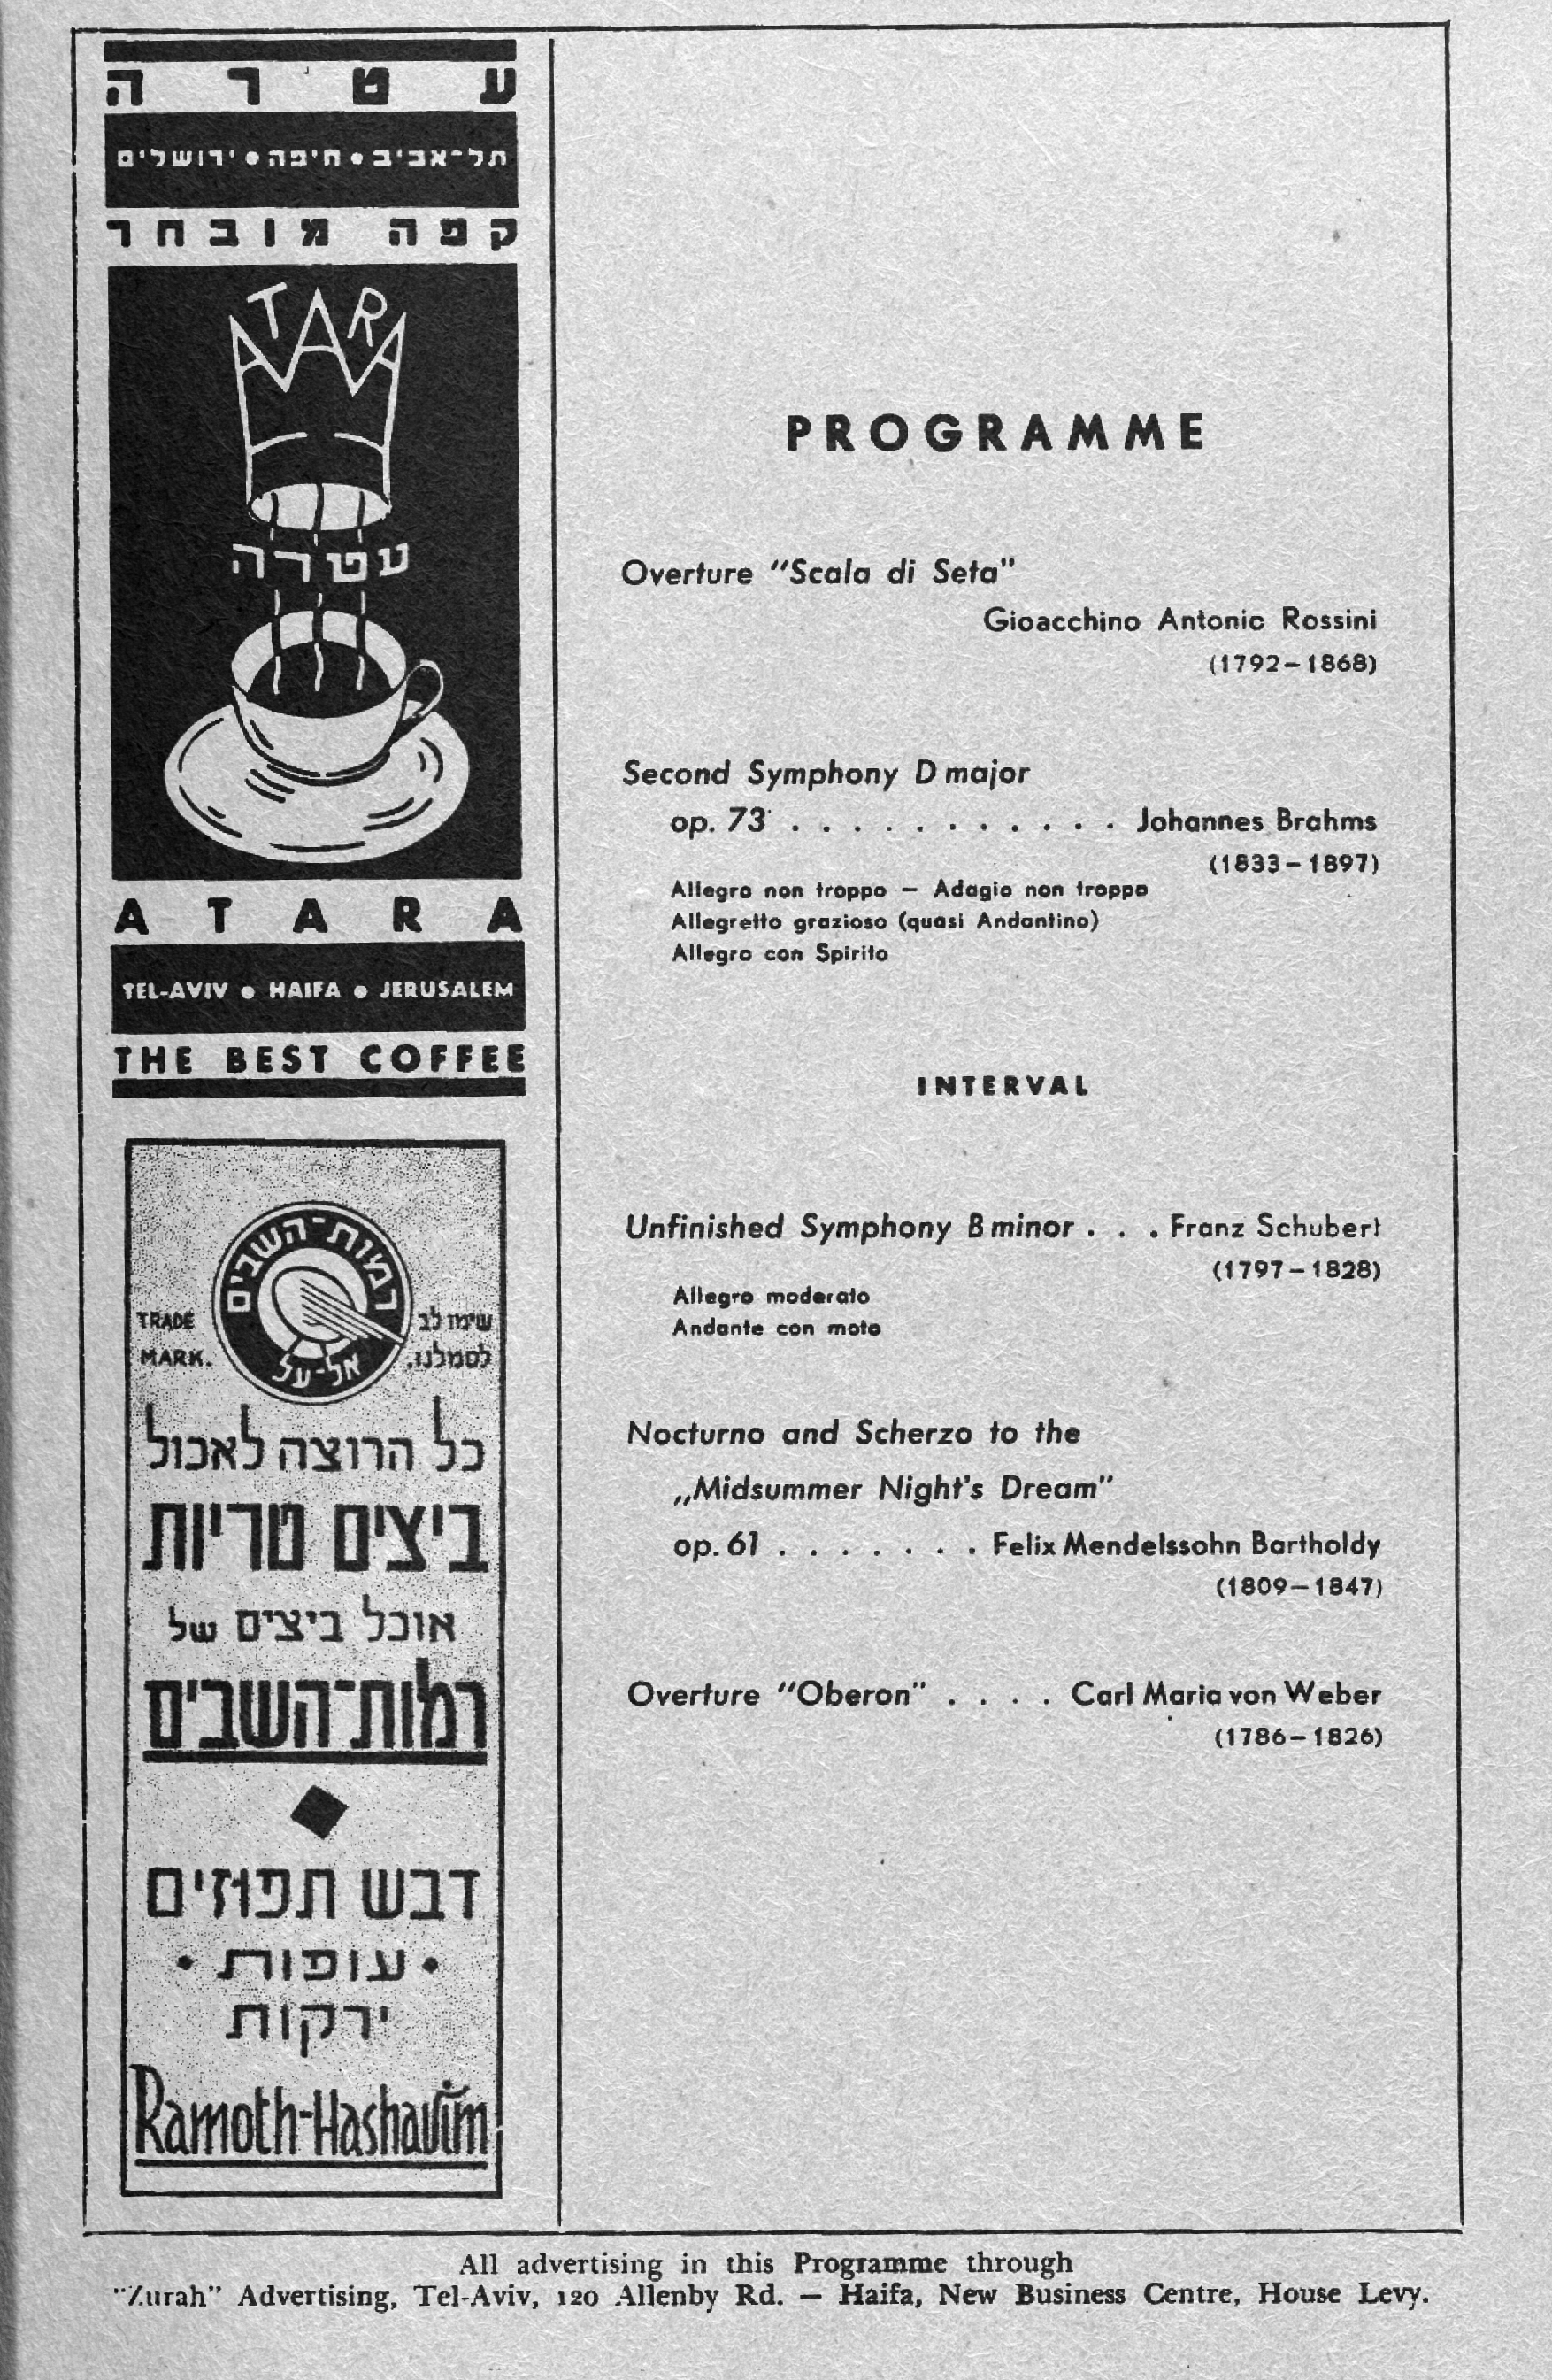 Program, with ads, of the Palestine Symphony Orchestra's first concert.